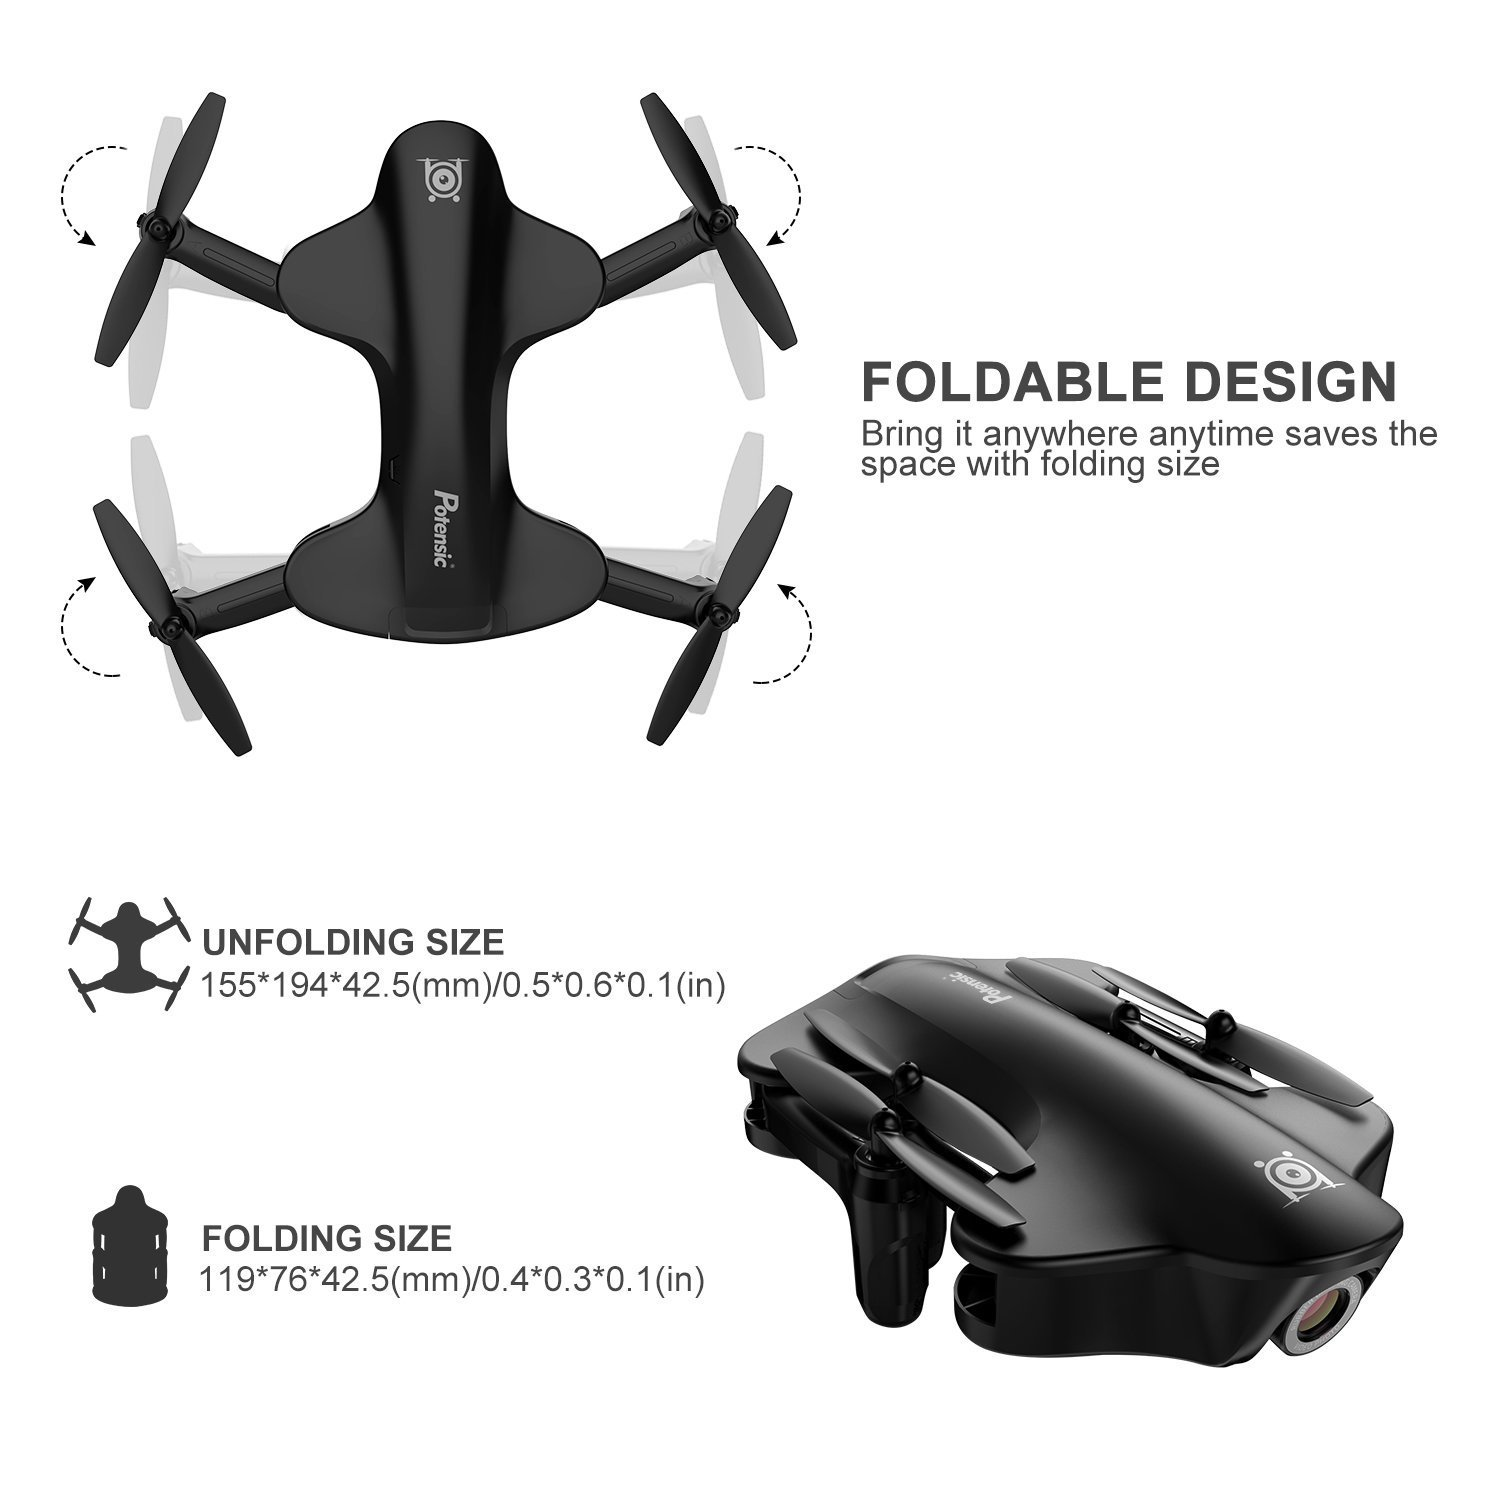 Potensic Foldable RC Drone With 720P Camera Live Video Feed, U29S Wi-Fi FPV 2.4GHz 6-Axis Gyro Quadcopter with 120° Wide-angle Shot -Flight Route Setting, Optical Flow, Altitude Hold, One Key Take Off by Potensic